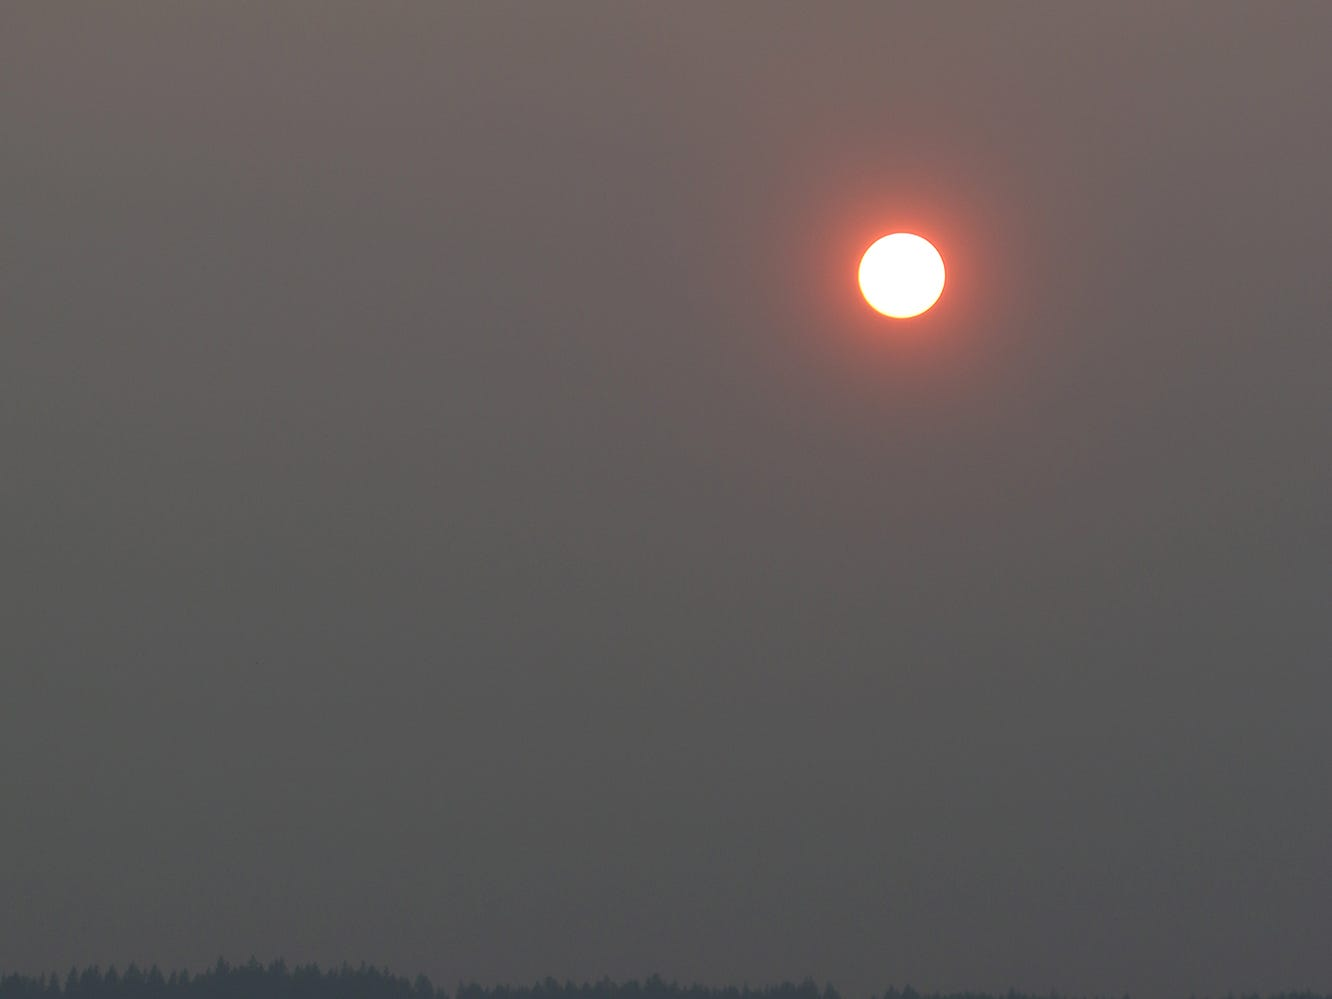 The sun turns orange red as it cuts through the smoky haze at the Tracyton Boat ramp on Monday August 13, 2018.